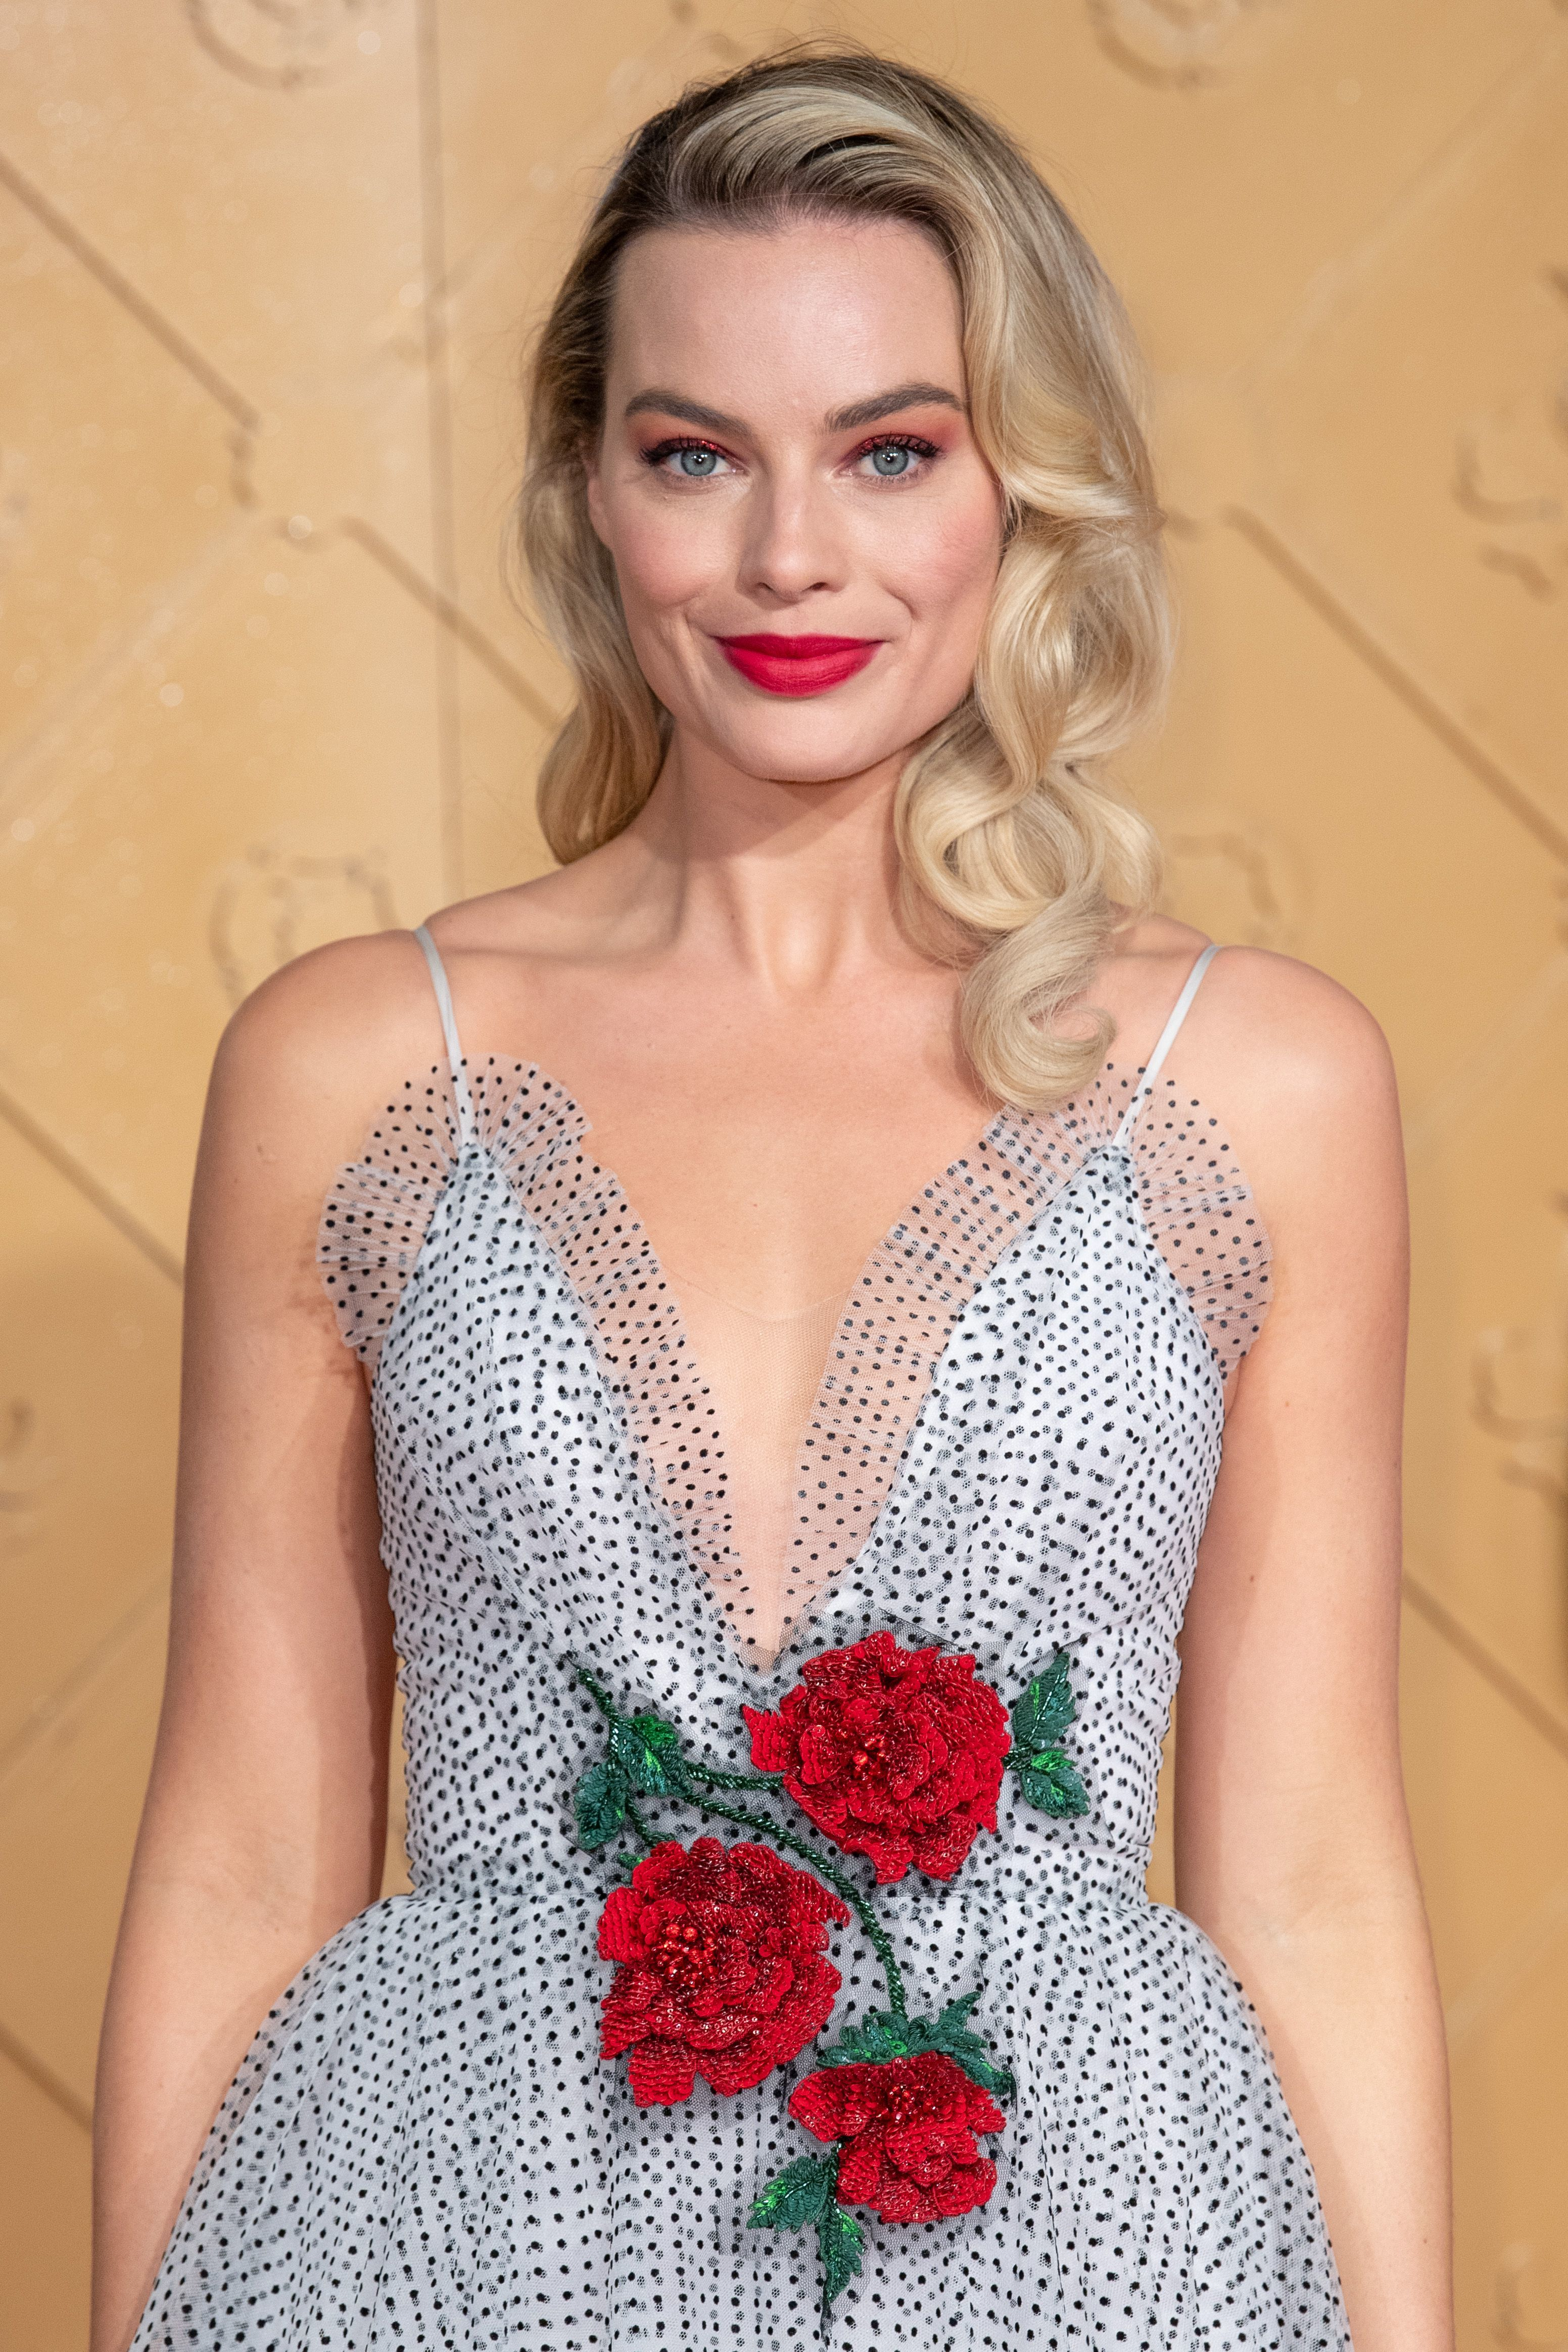 """Margot Robbie attends the premiere of """"Mary Queen of Scots"""" in London on Dec. 10, 2018."""